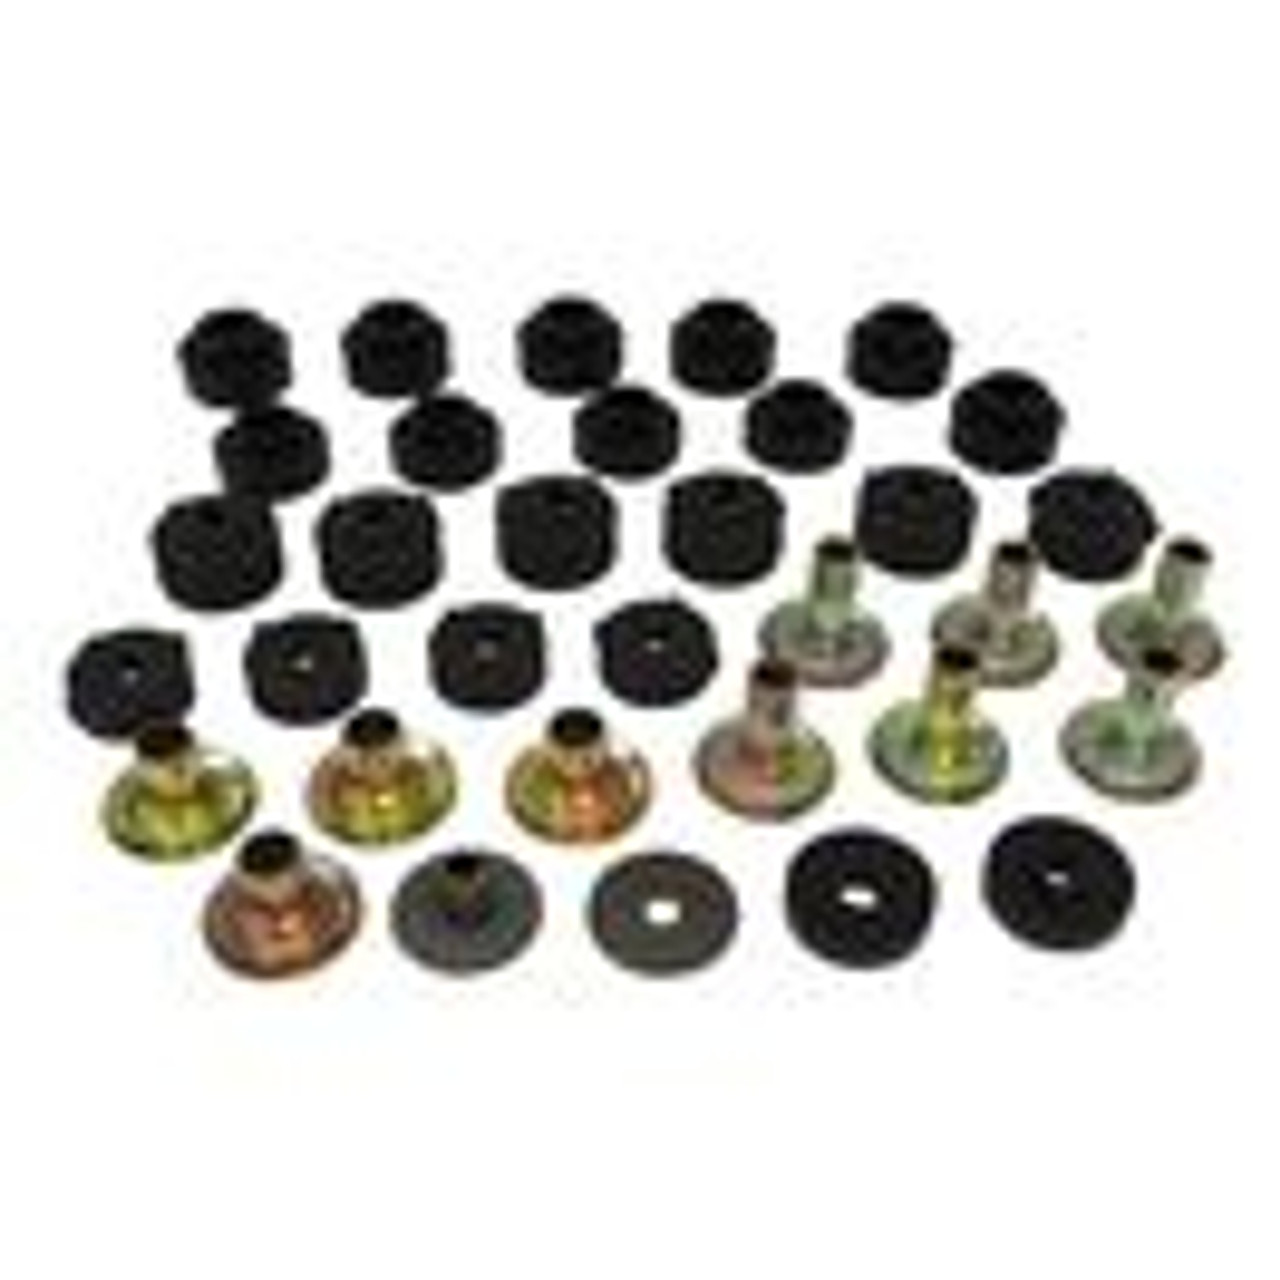 Body mount bushings, 1987-95 YJ